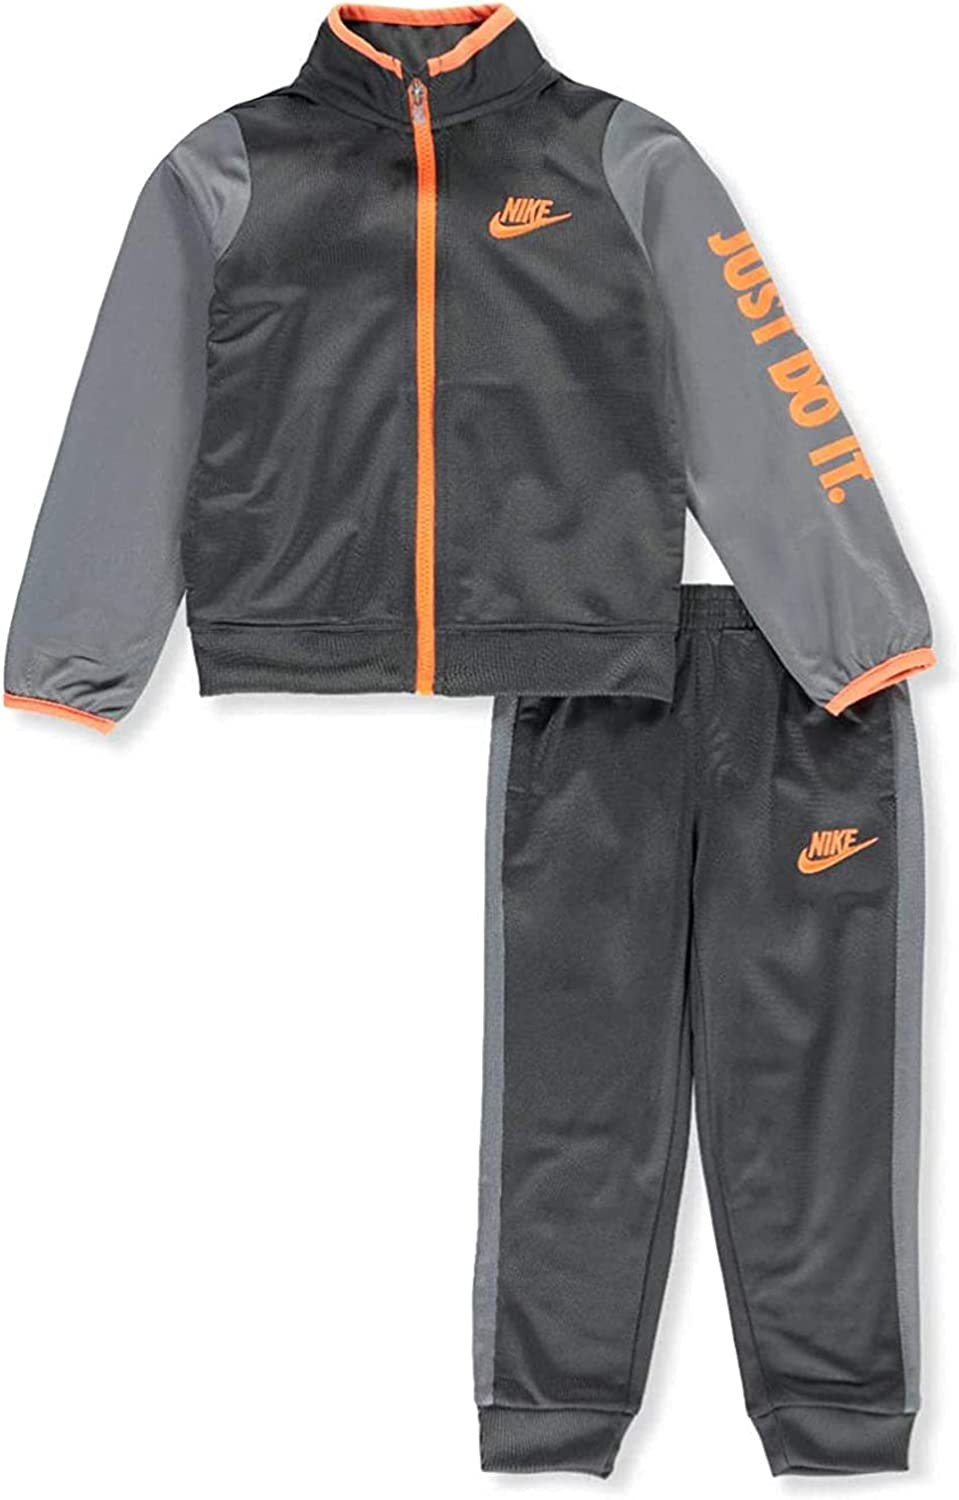 Nike outlet Baby Boys' Tracksuit Challenge the lowest price of Japan 2-Piece